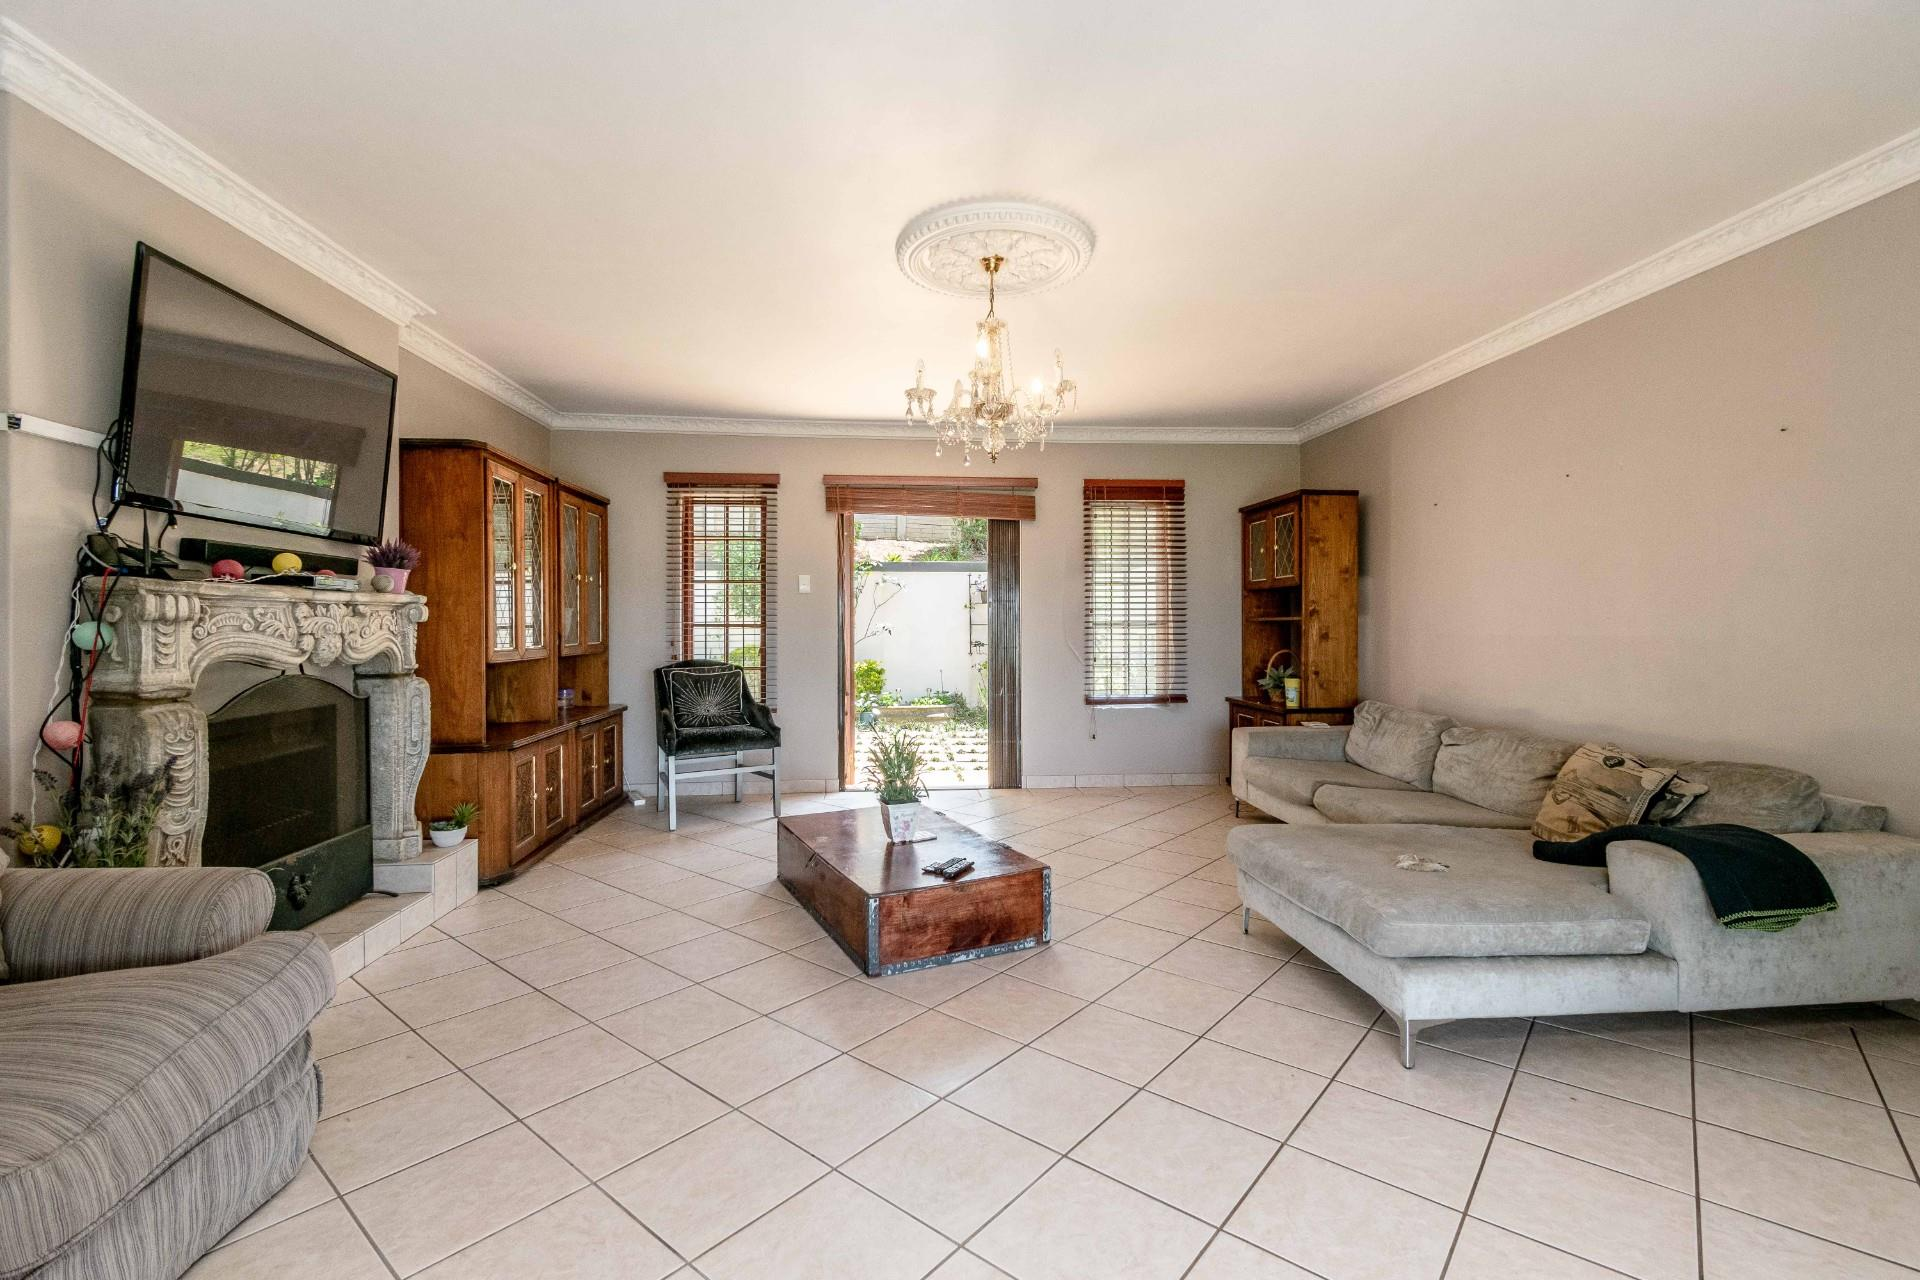 4 Bedroom House For Sale in Assagay